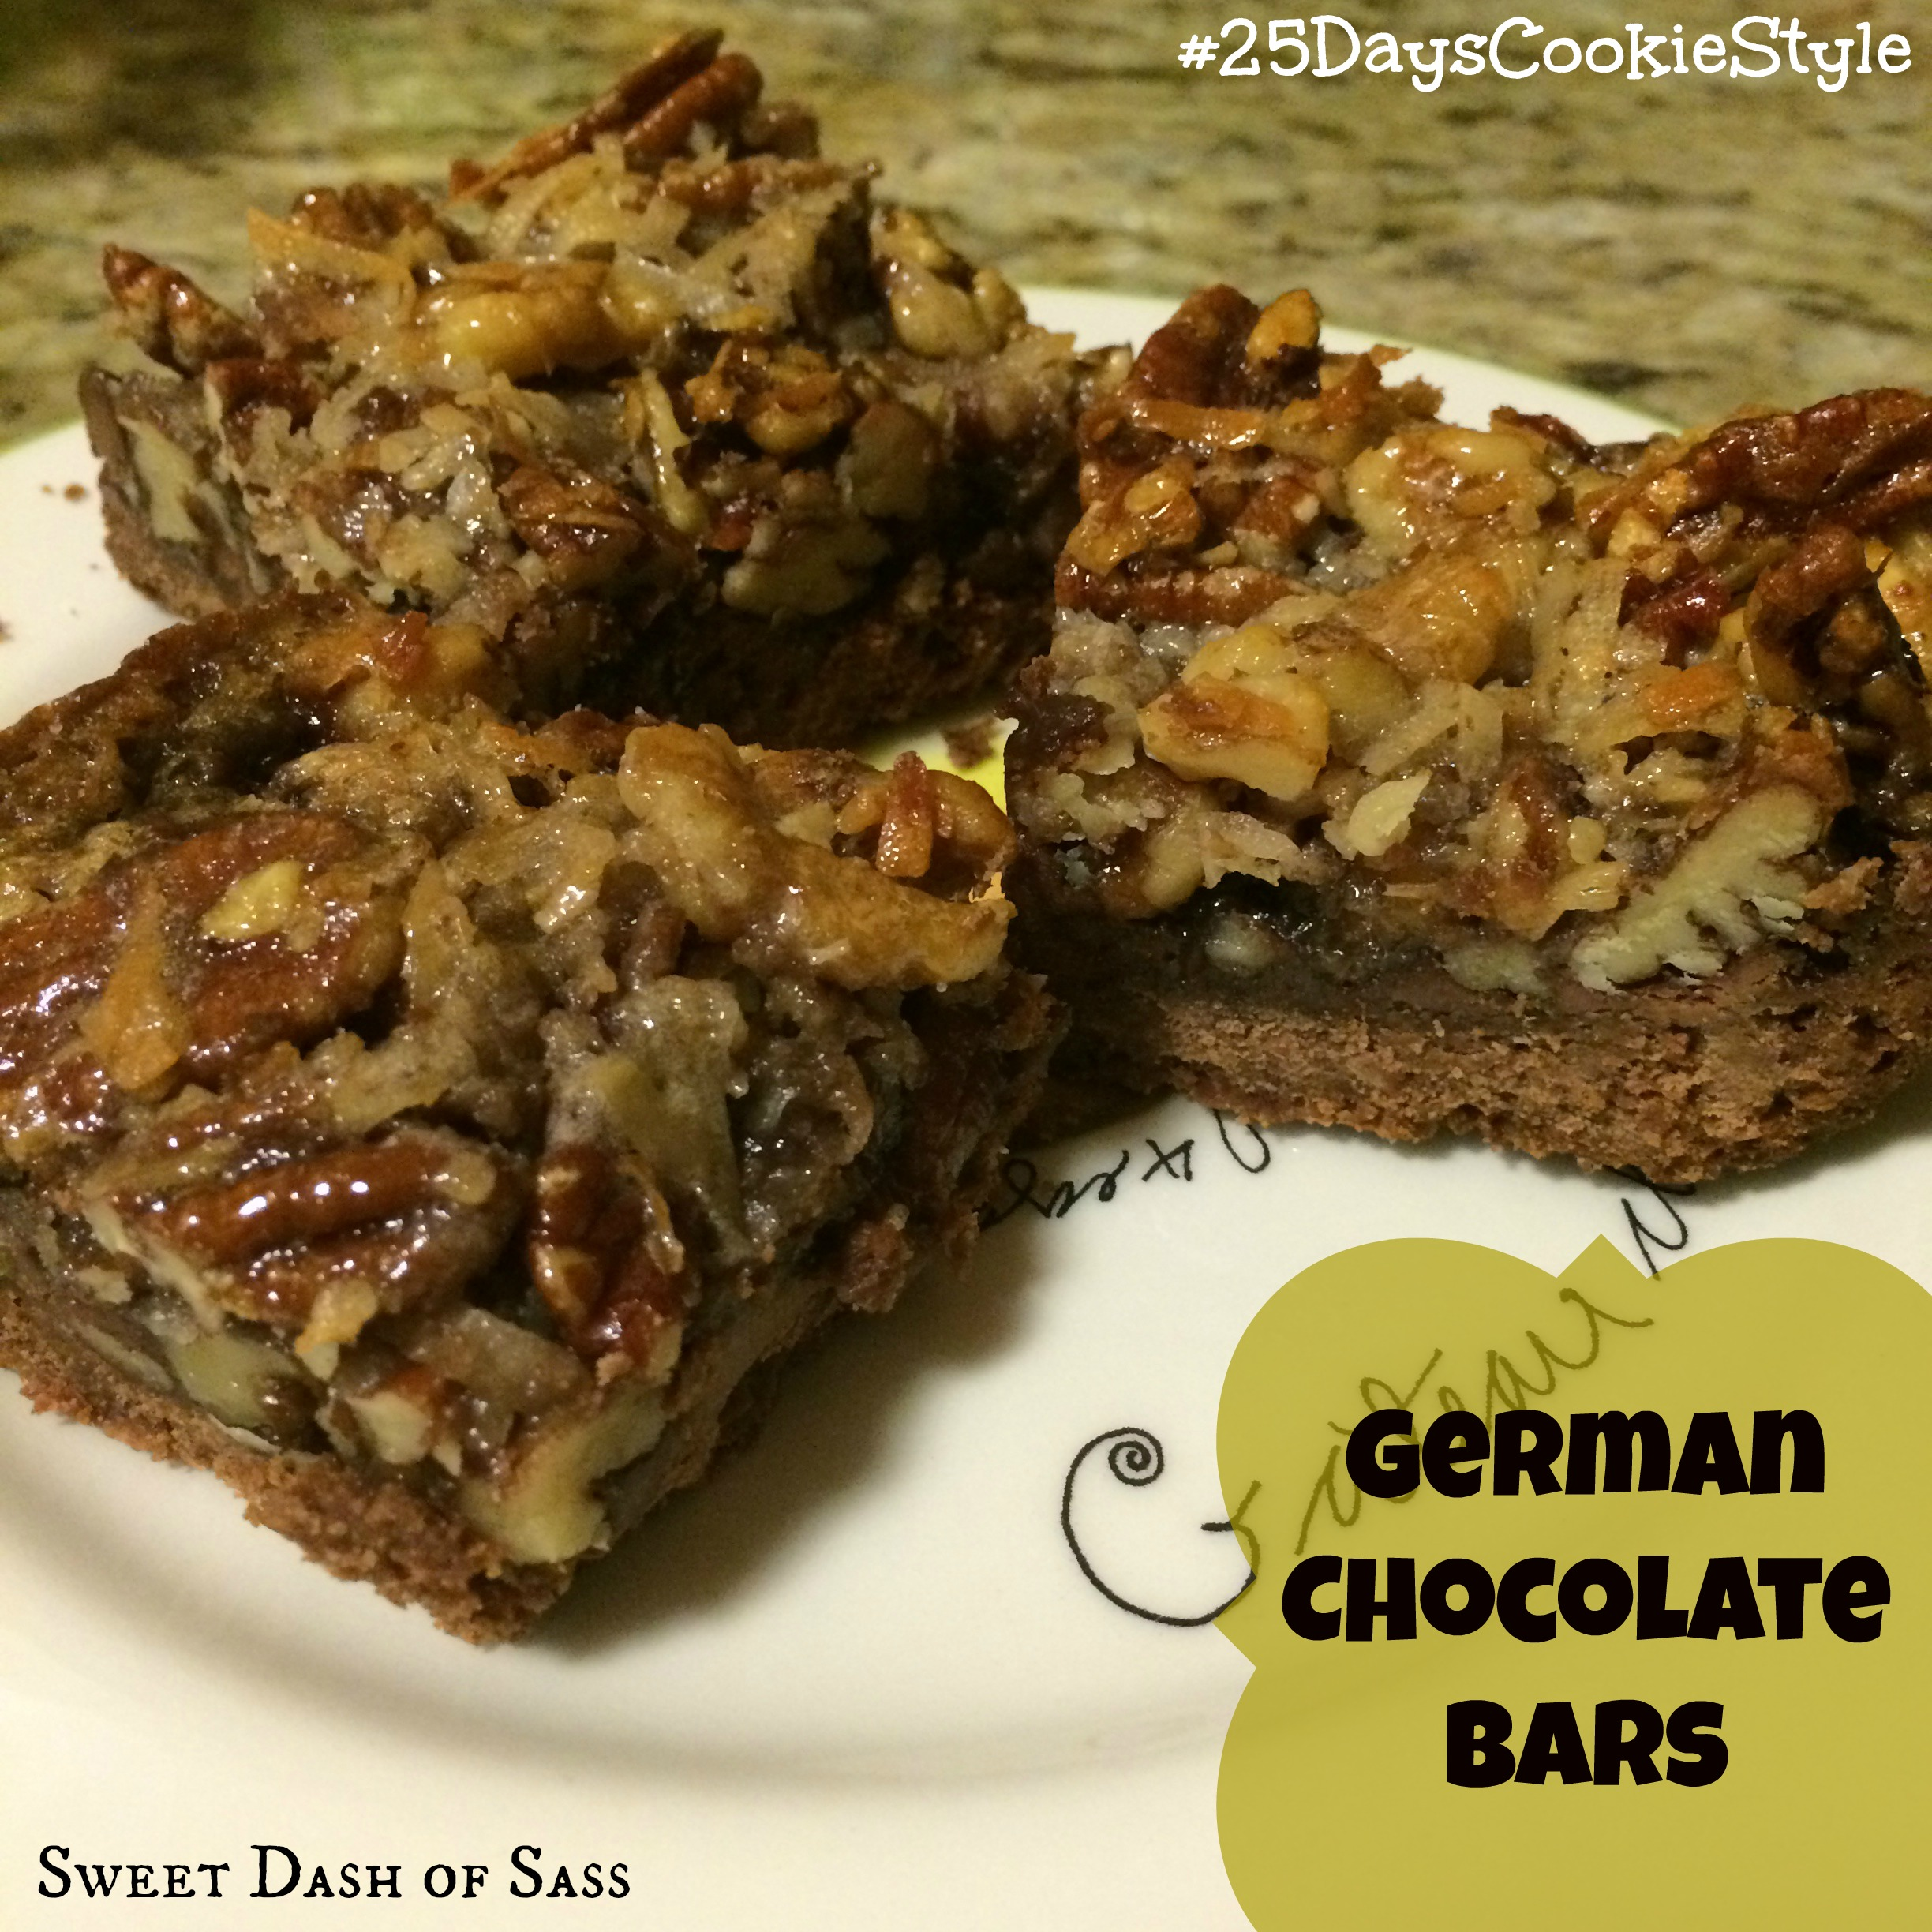 German Chocolate Bars #25DaysCookieStyle www.SweetDashofSass.com